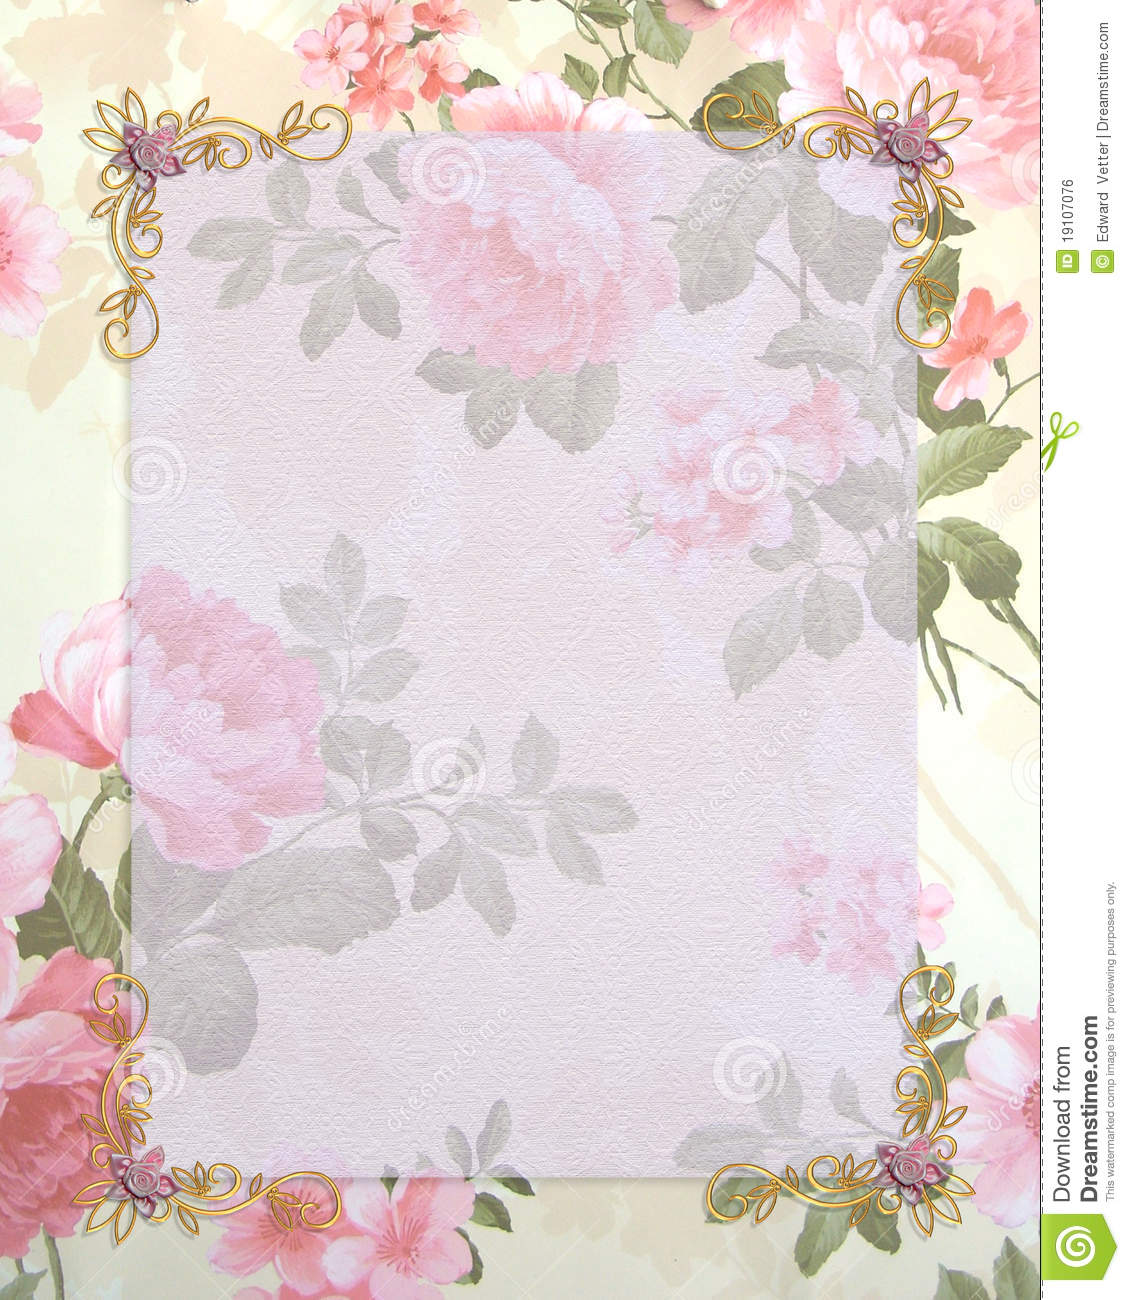 Wedding Invitation Pink Roses Stock Illustration - Image ...